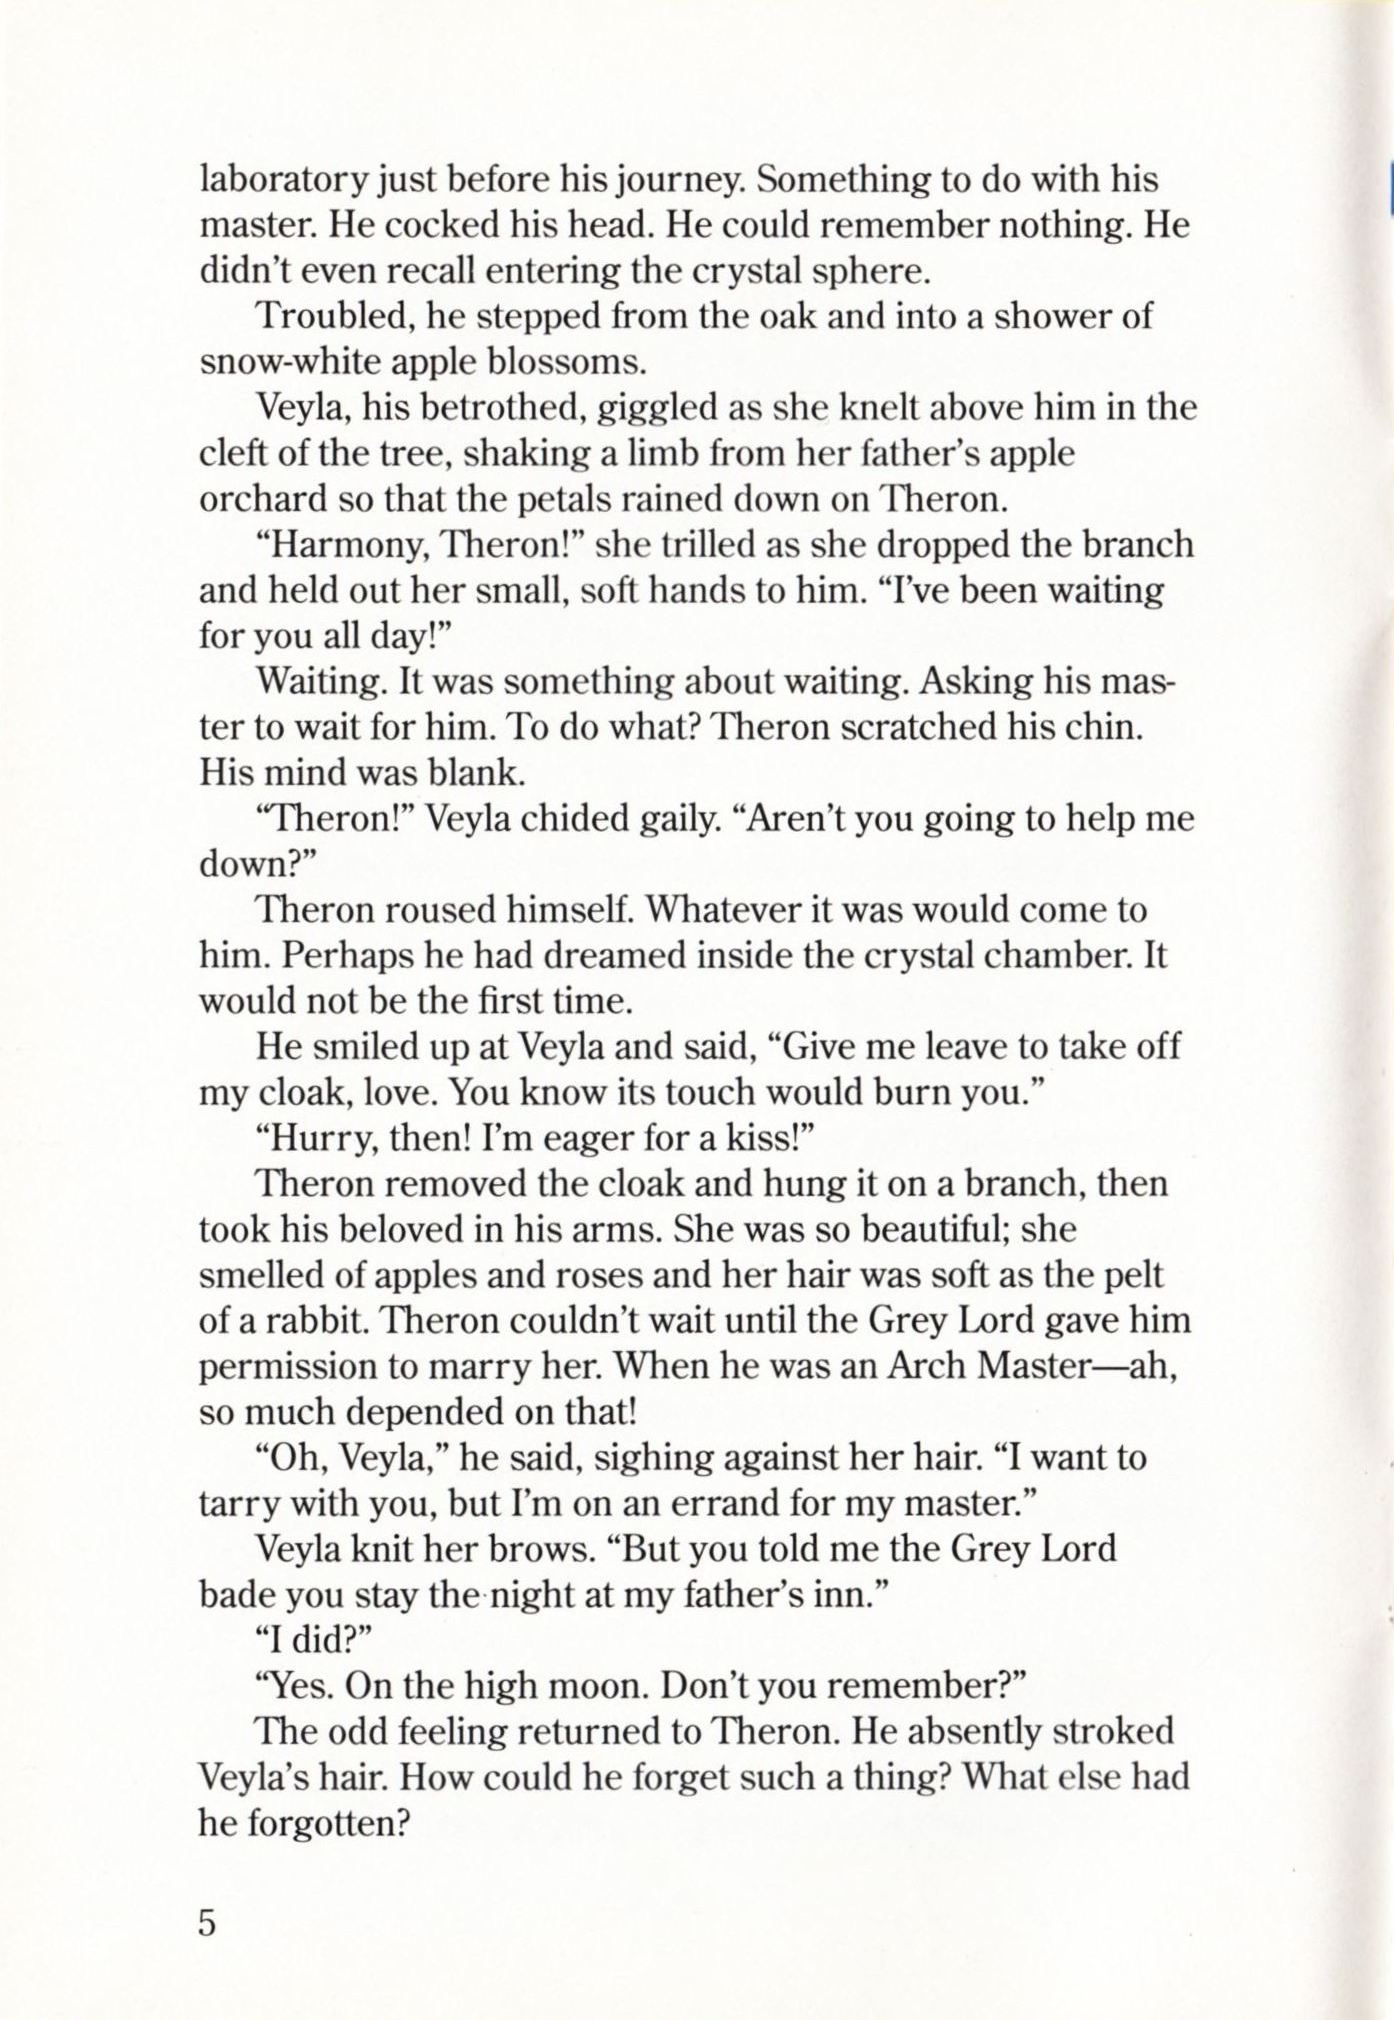 Game - Dungeon Master - US - Super NES - Manual - Page 008 - Scan